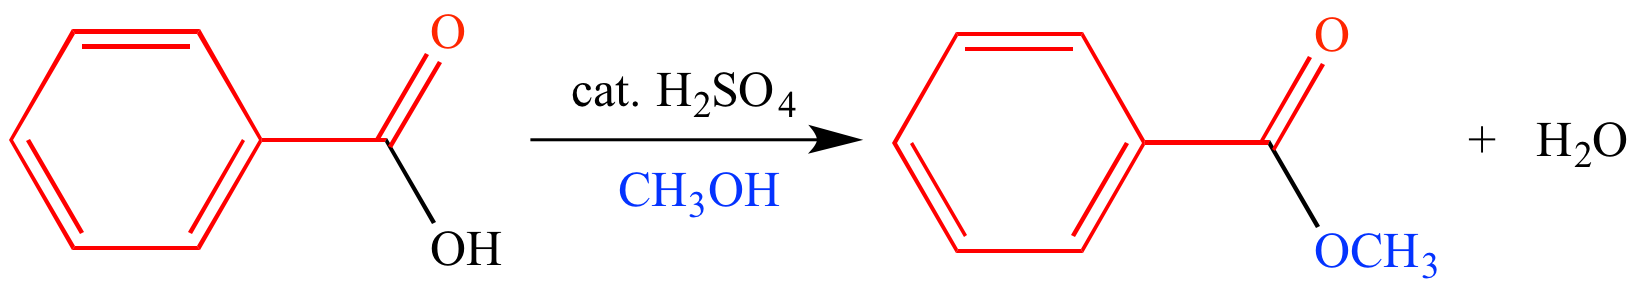 esterification of methyl benzoate from benzoic acid Ethyl alcohol (ethanol) and benzoic acid react to produce ethyl benzoate   example ester possibilities ester odour ester odour ethyl benzoate fruity ethyl  butyrate pineapple  methyl salicylate wintergreen methyl butyrate apple/ banana  from the available carboxylic acids use either 5 ml or 3 grams and  add to the.